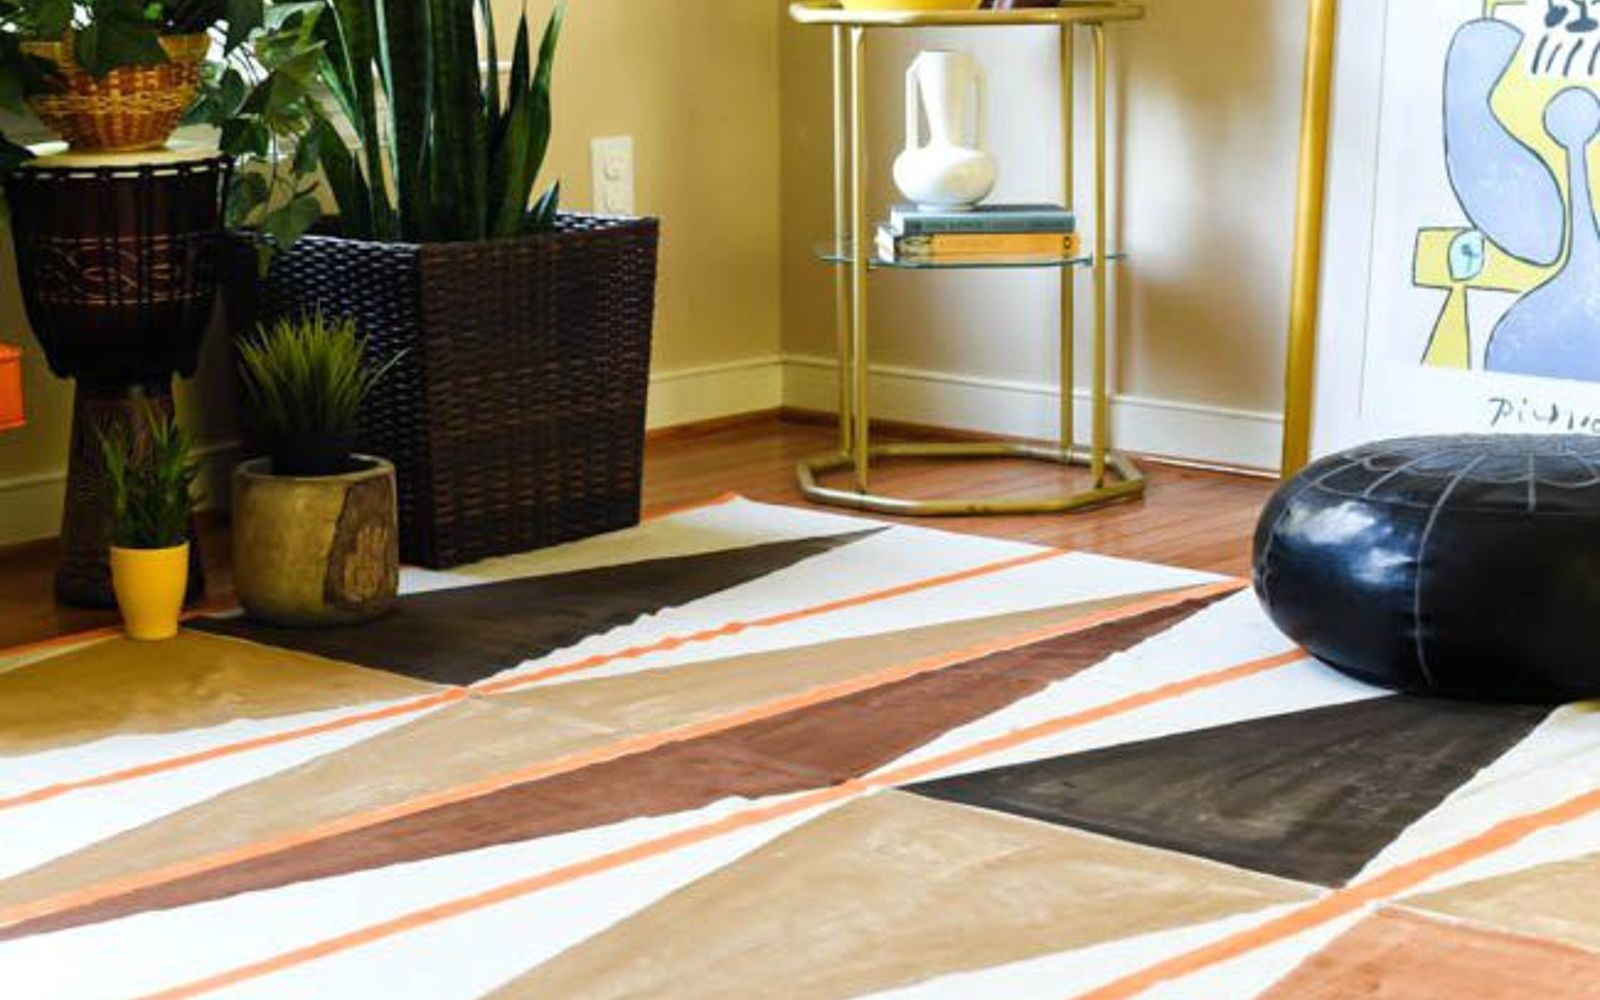 s 11 designer decor looks you can make on the cheap, crafts, home decor, Modern Painted Rug West Elm